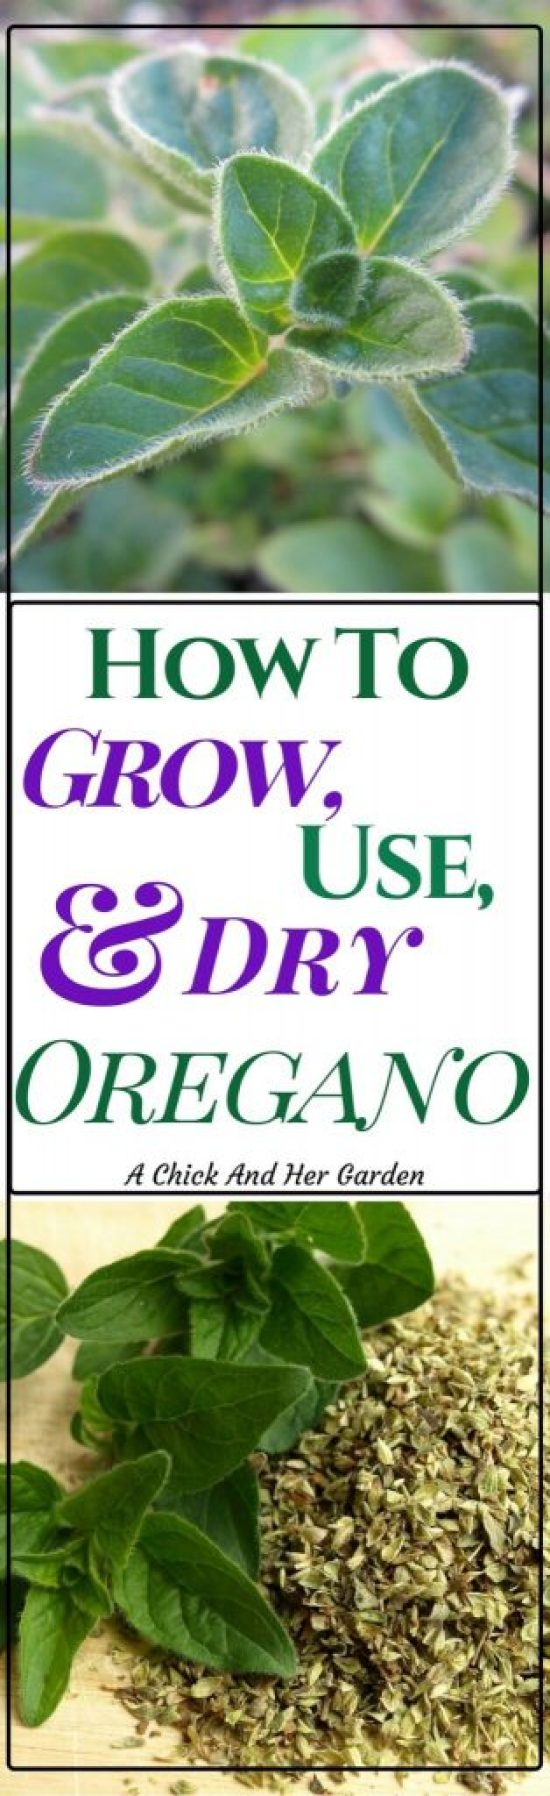 Oregano is not only an awesome addition to our food, but also has baffling health benefits! Check out how to grow oregano and why you should!